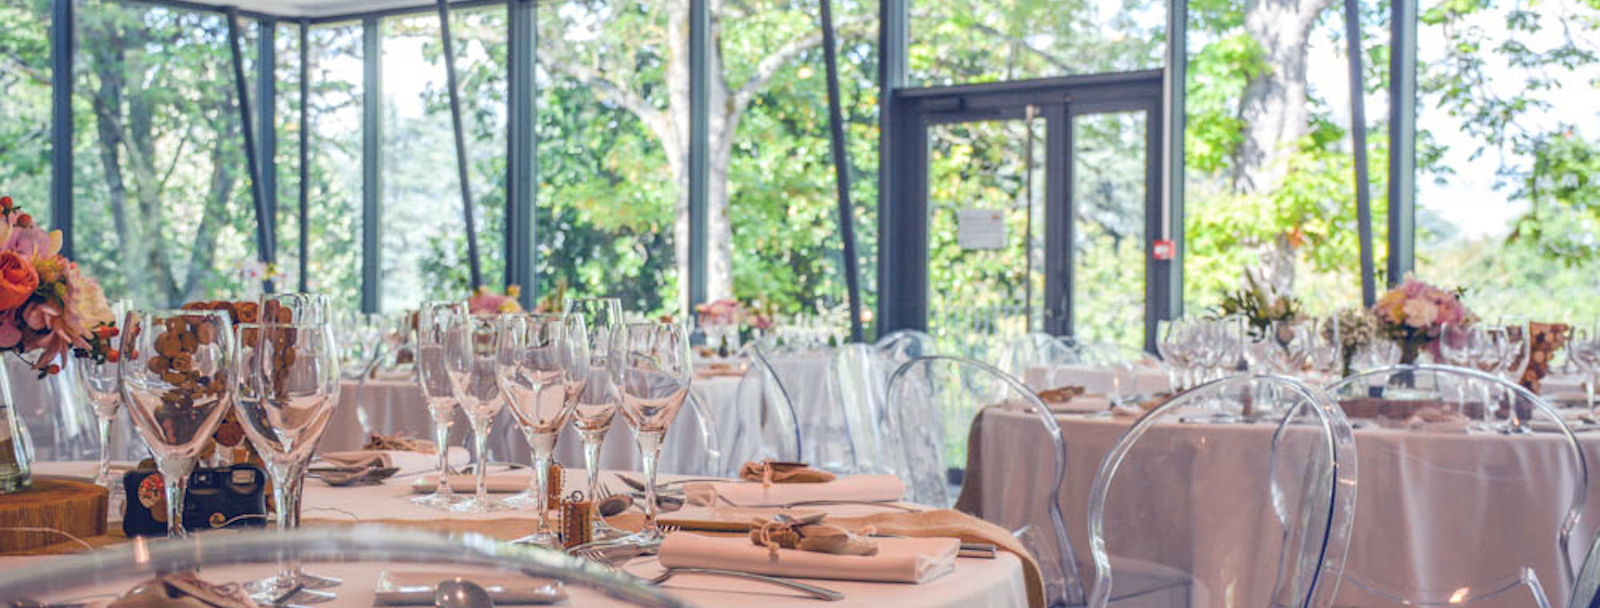 Le Domaine de Montjoie in Toulouse, France - Events, Weddings